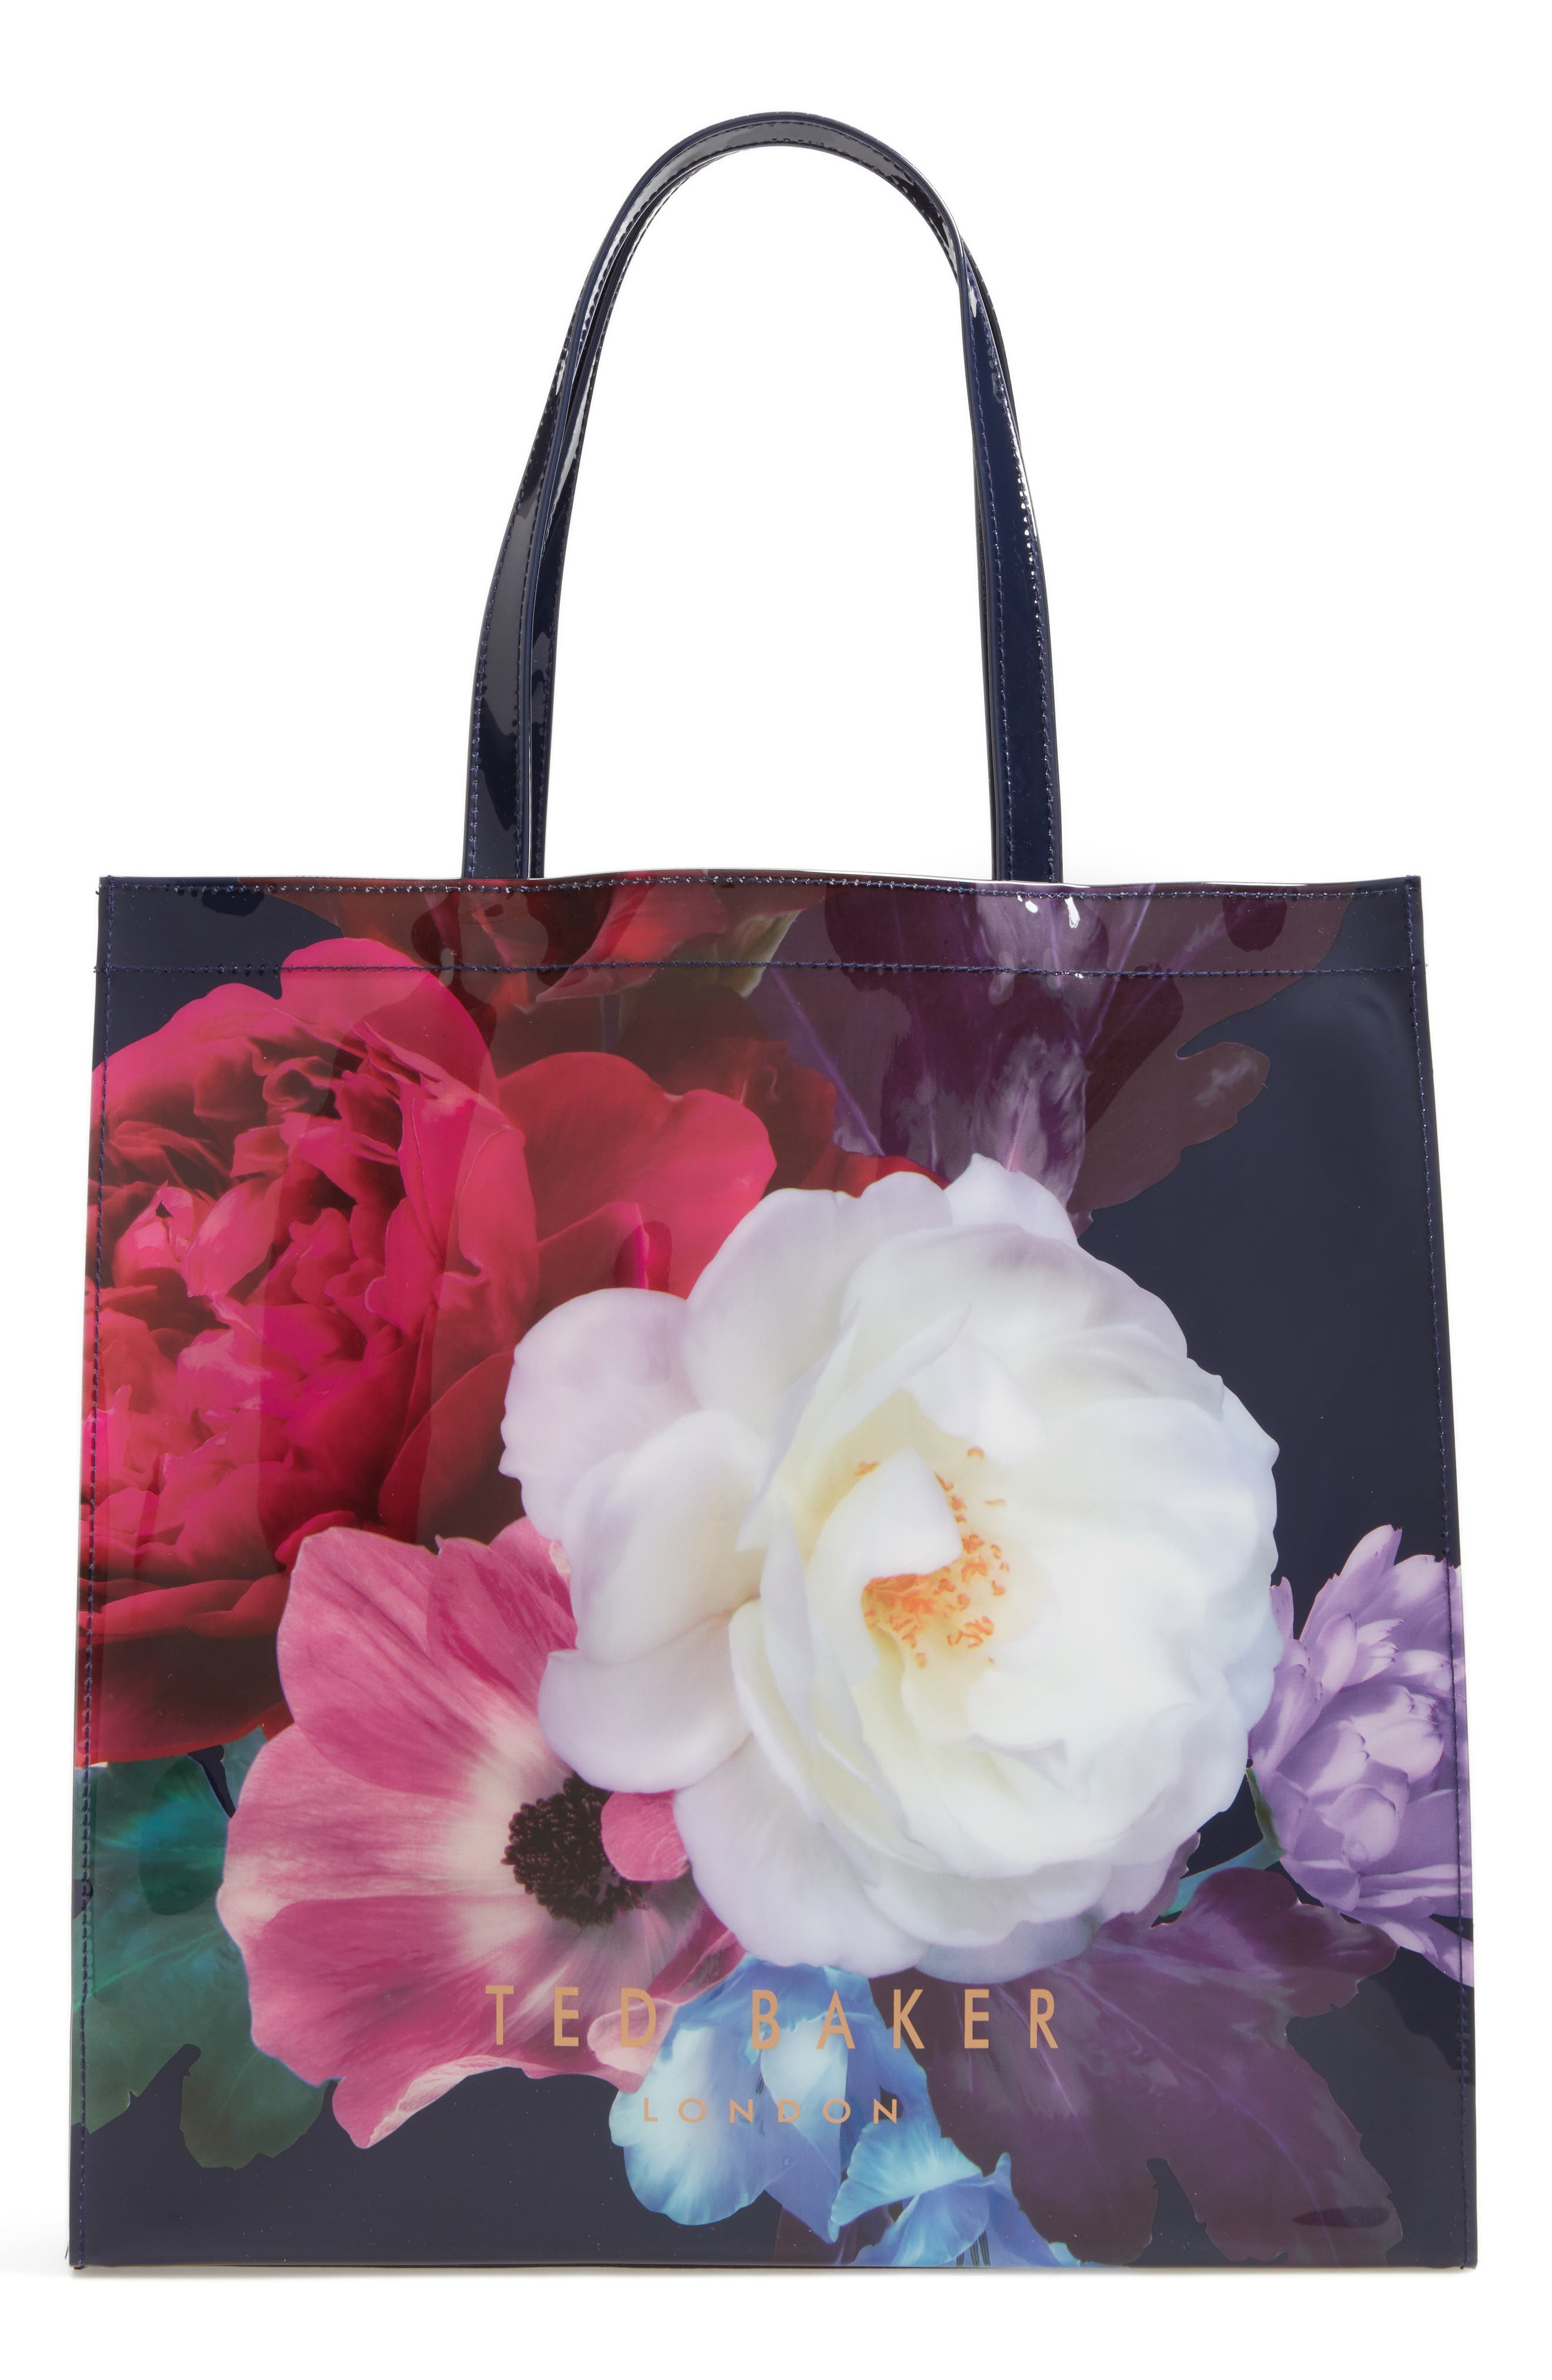 TED BAKER LONDON,                             Blushing Bouquet Large Icon Tote,                             Alternate thumbnail 4, color,                             410